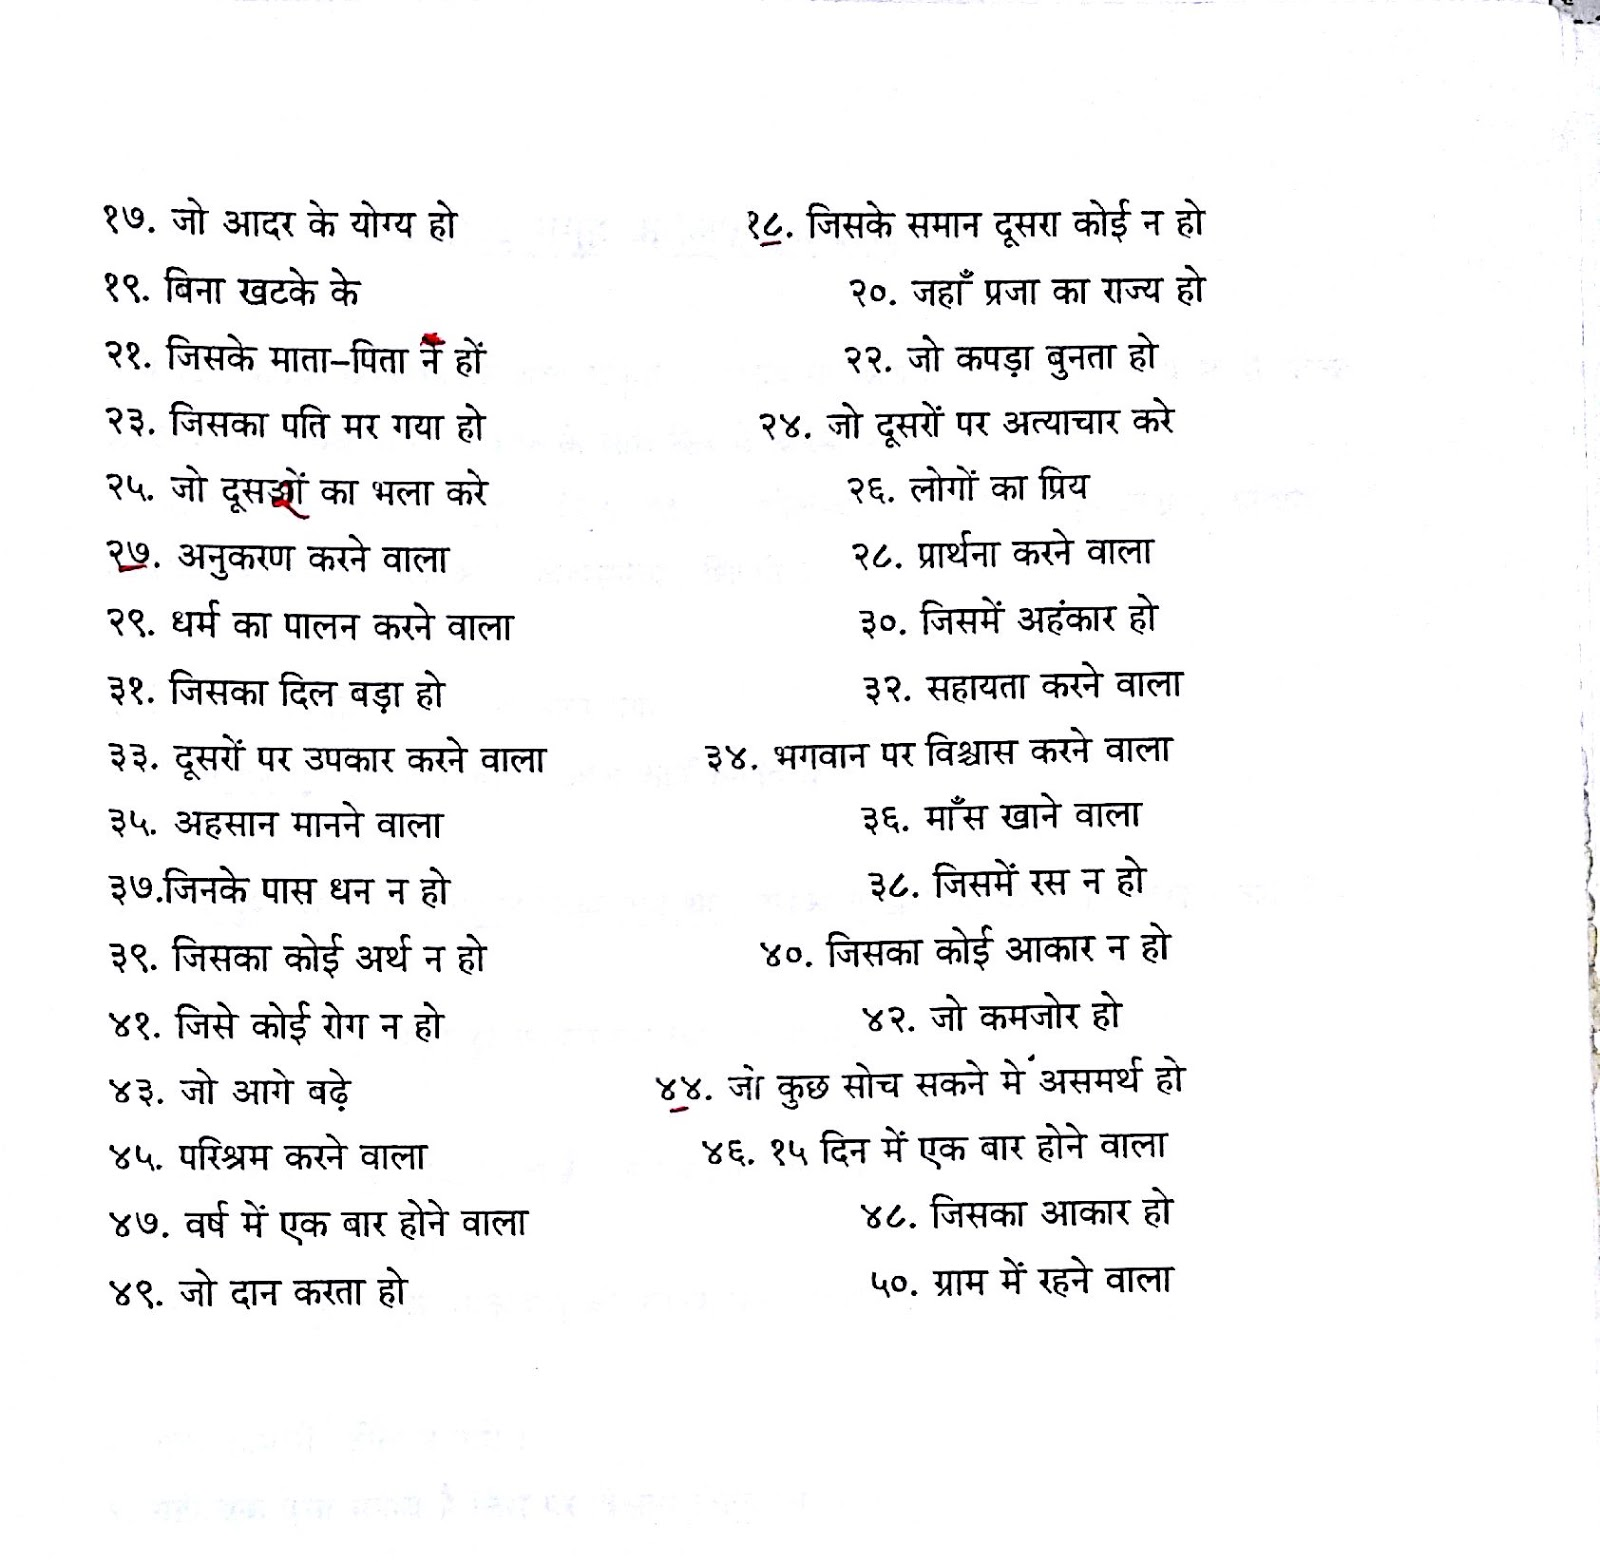 Hindi Grammar Work Sheet Collection For Classes 5 6 7 Amp 8 Opposites Synonyms Abstract Noun